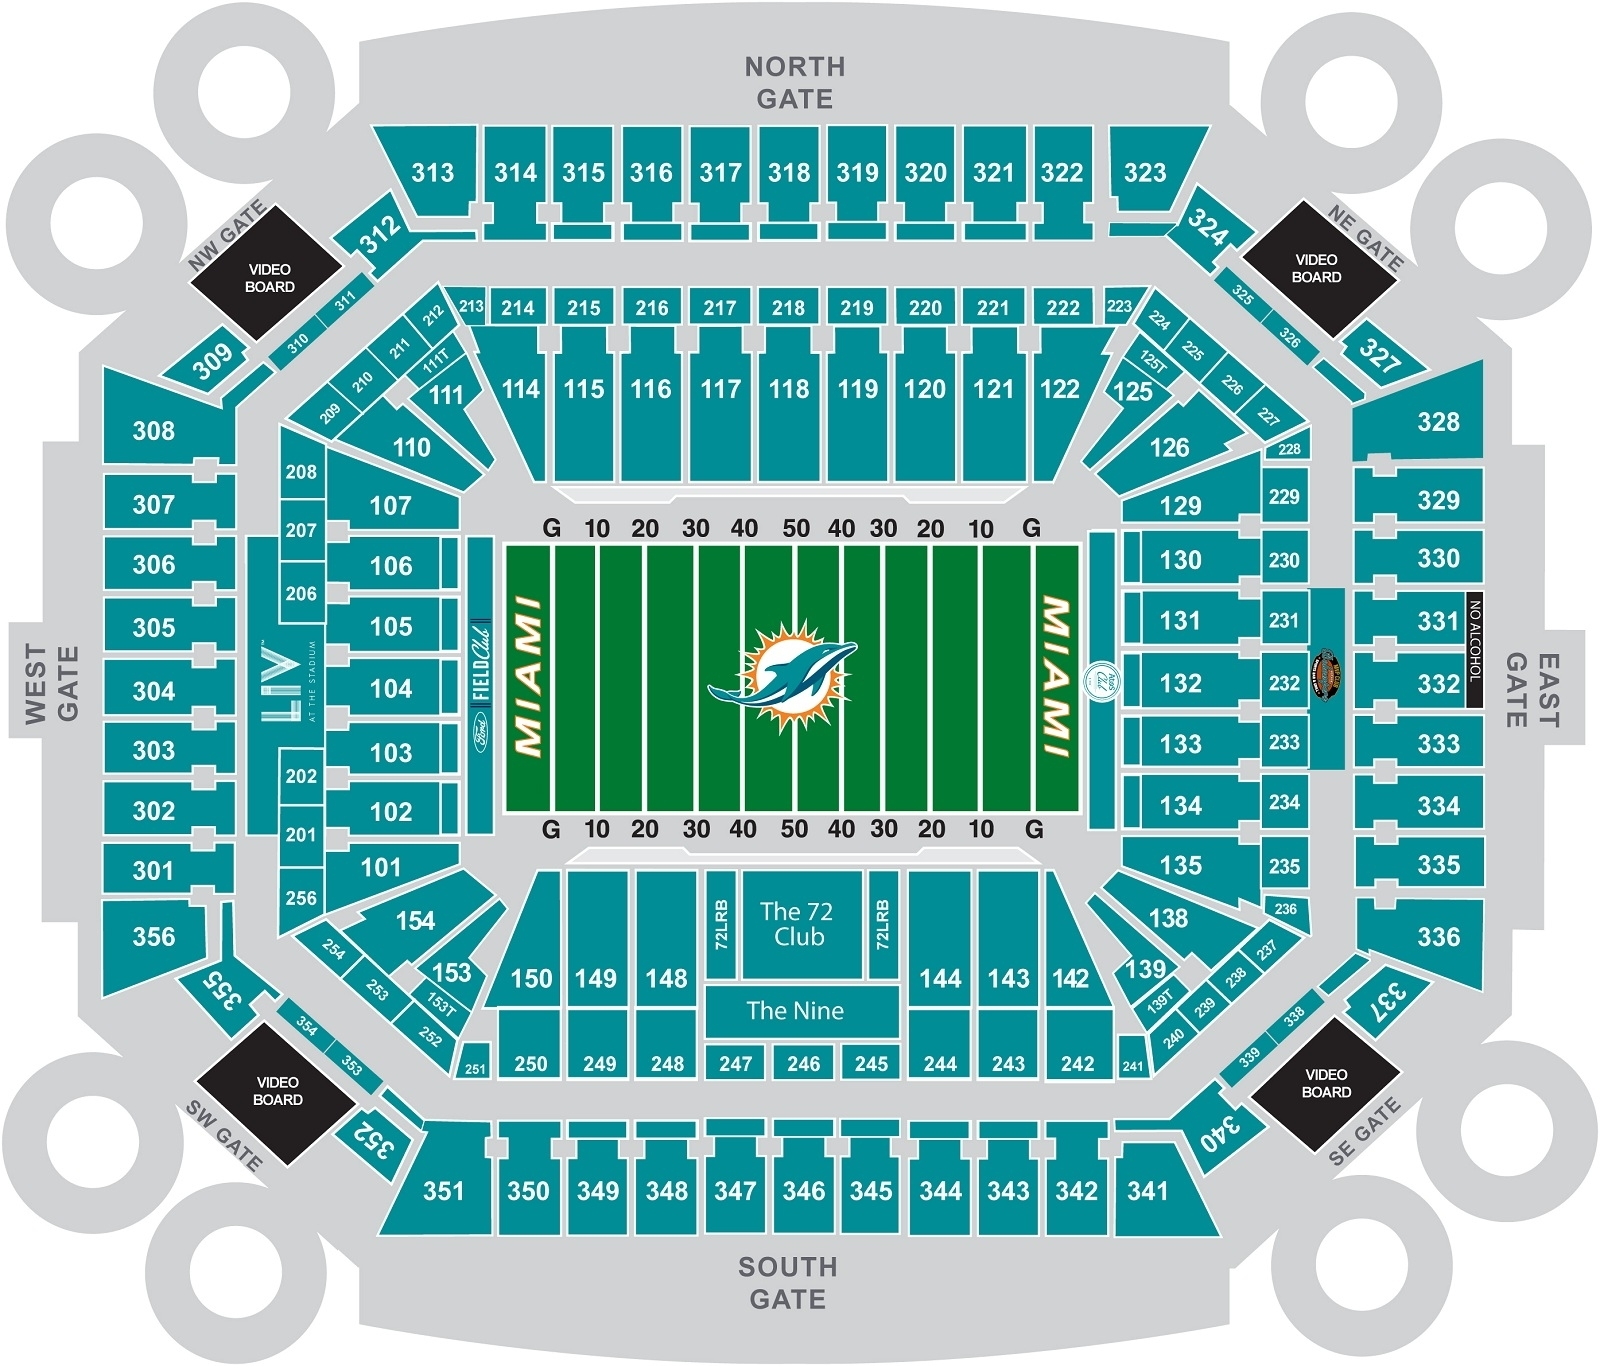 2020 Super Bowl Seating Chart | February 2, 2020 | Fan regarding Super Bowl 2019 Seating Chart